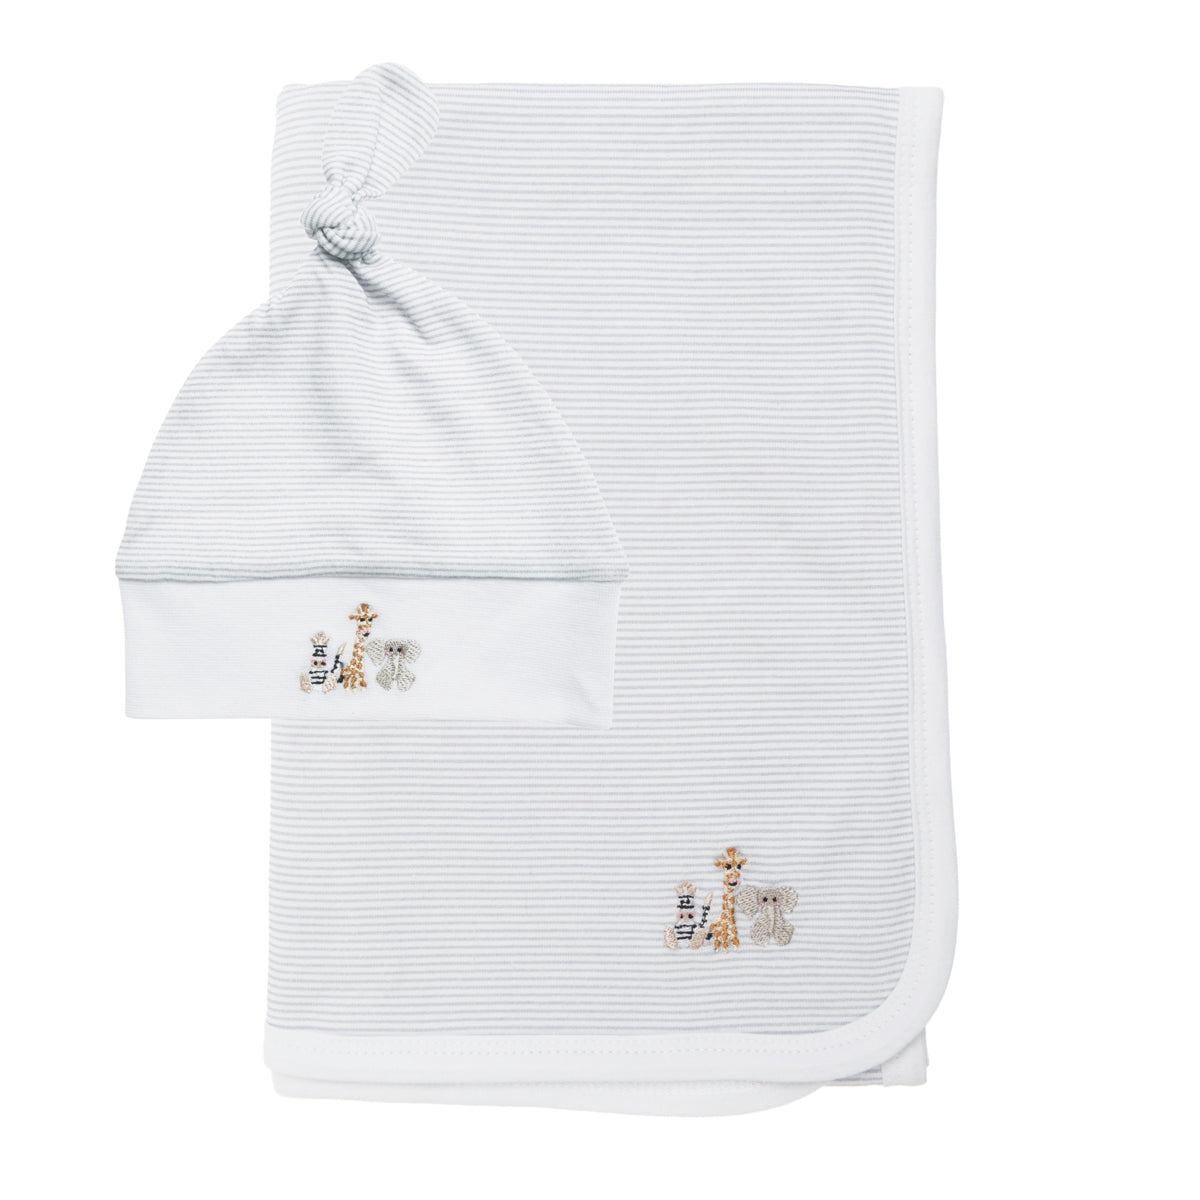 Bears & Balloons Swaddle Blanket & Hat Set by Sophie Allport